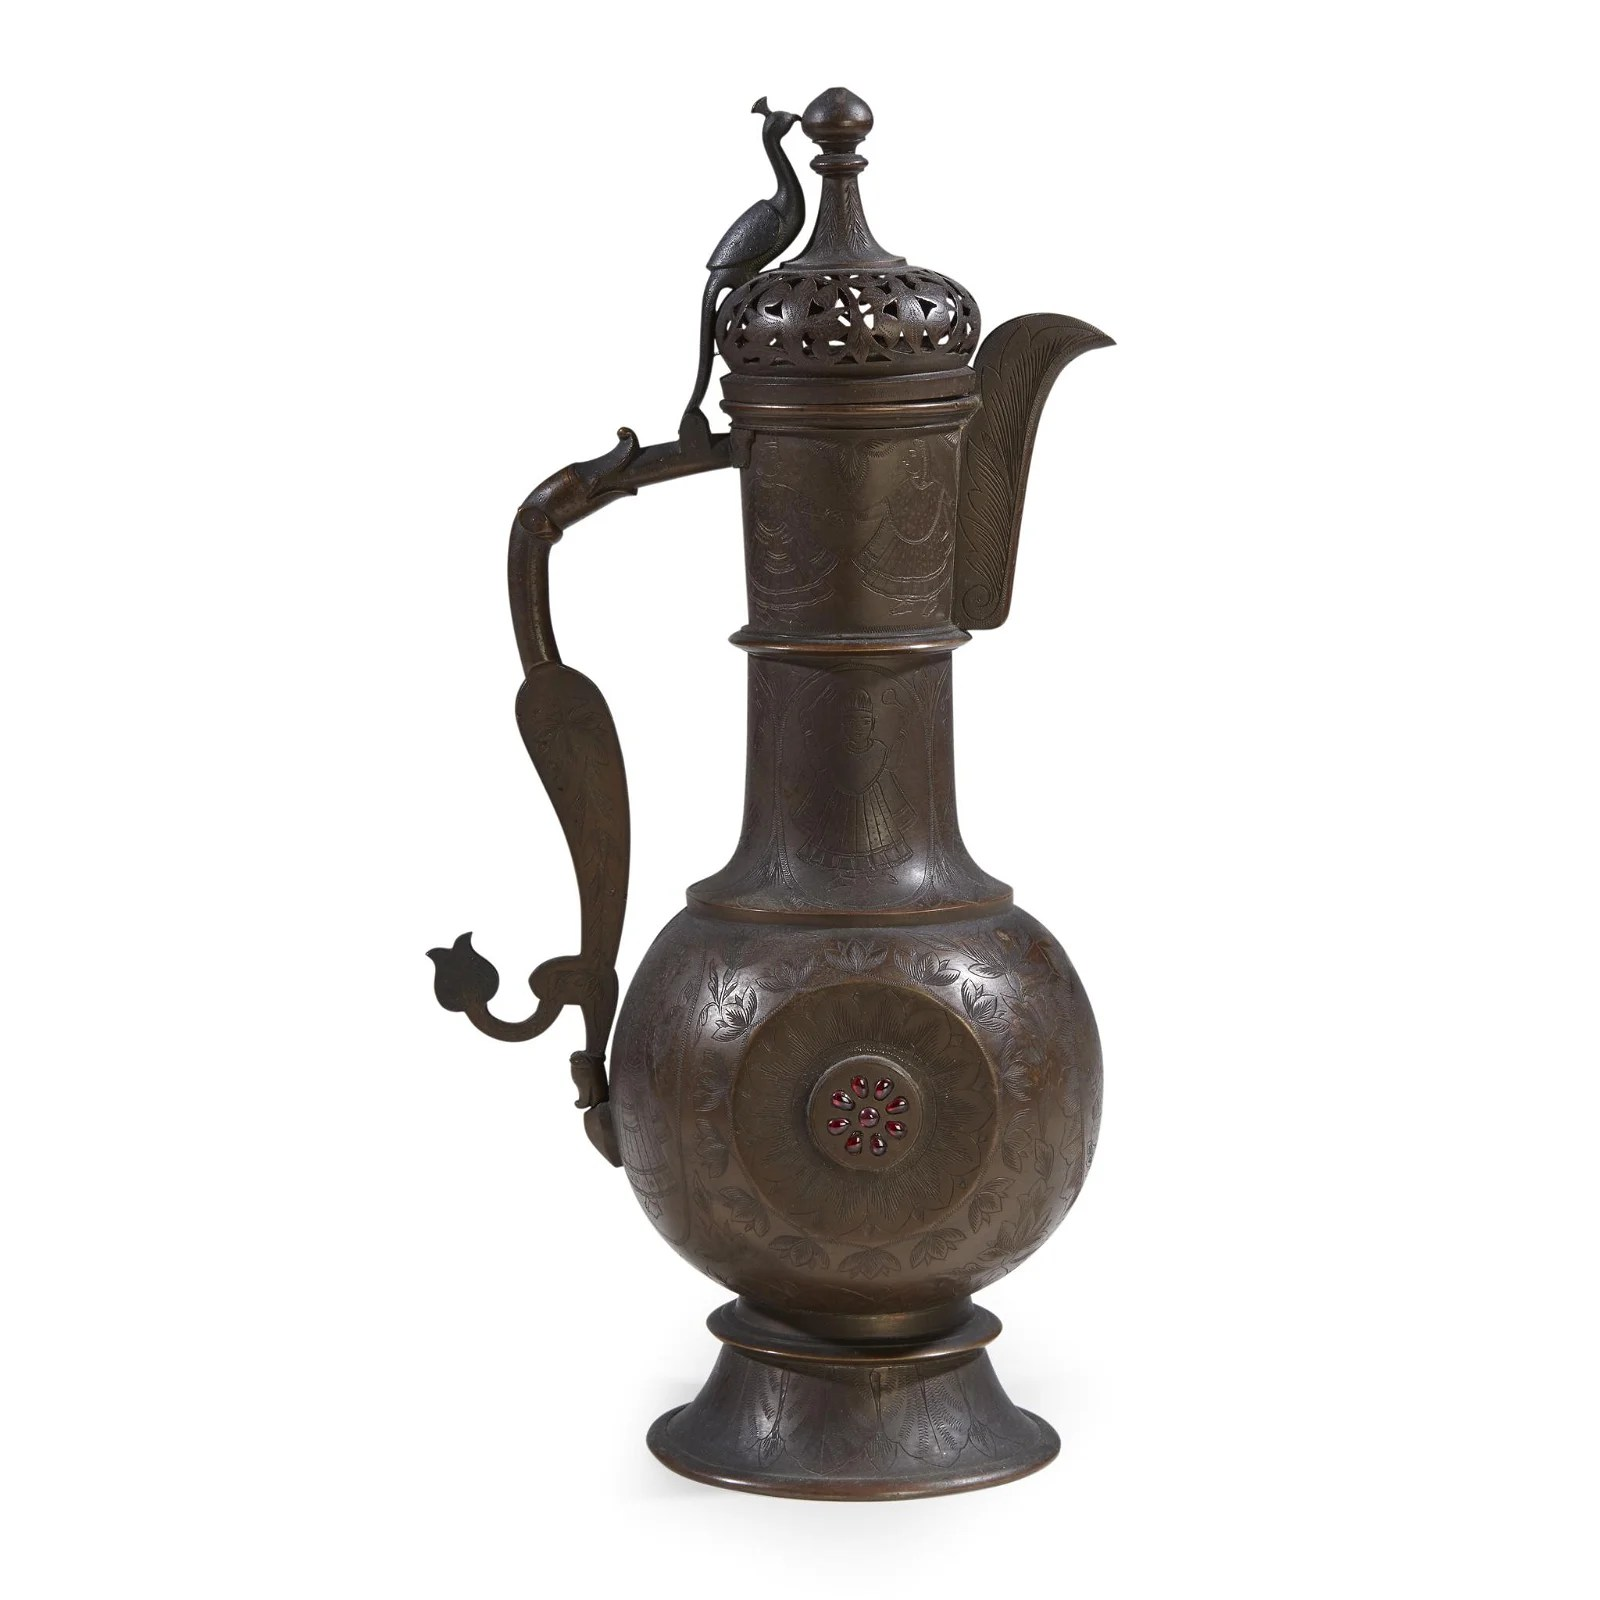 A Kashmiri or North Indian embellished brass ewer,